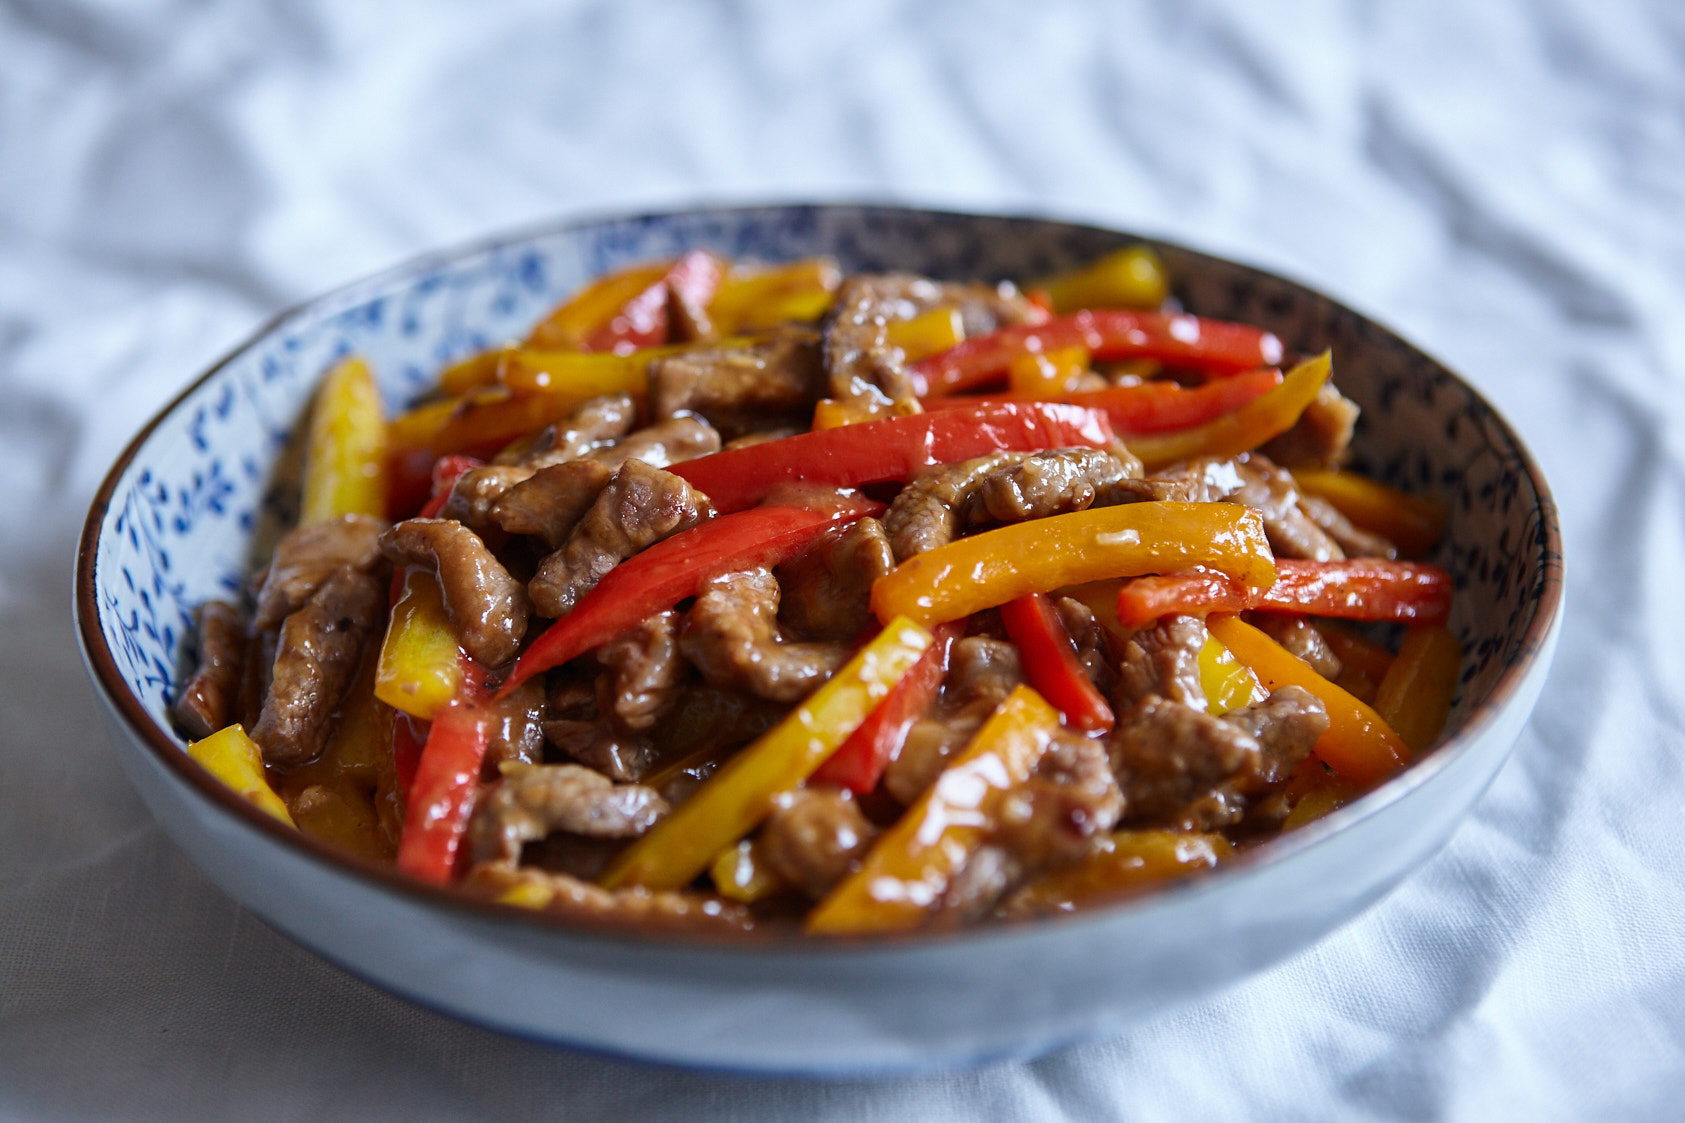 Communication on this topic: Beef and Pepper Stir-Fry, beef-and-pepper-stir-fry/